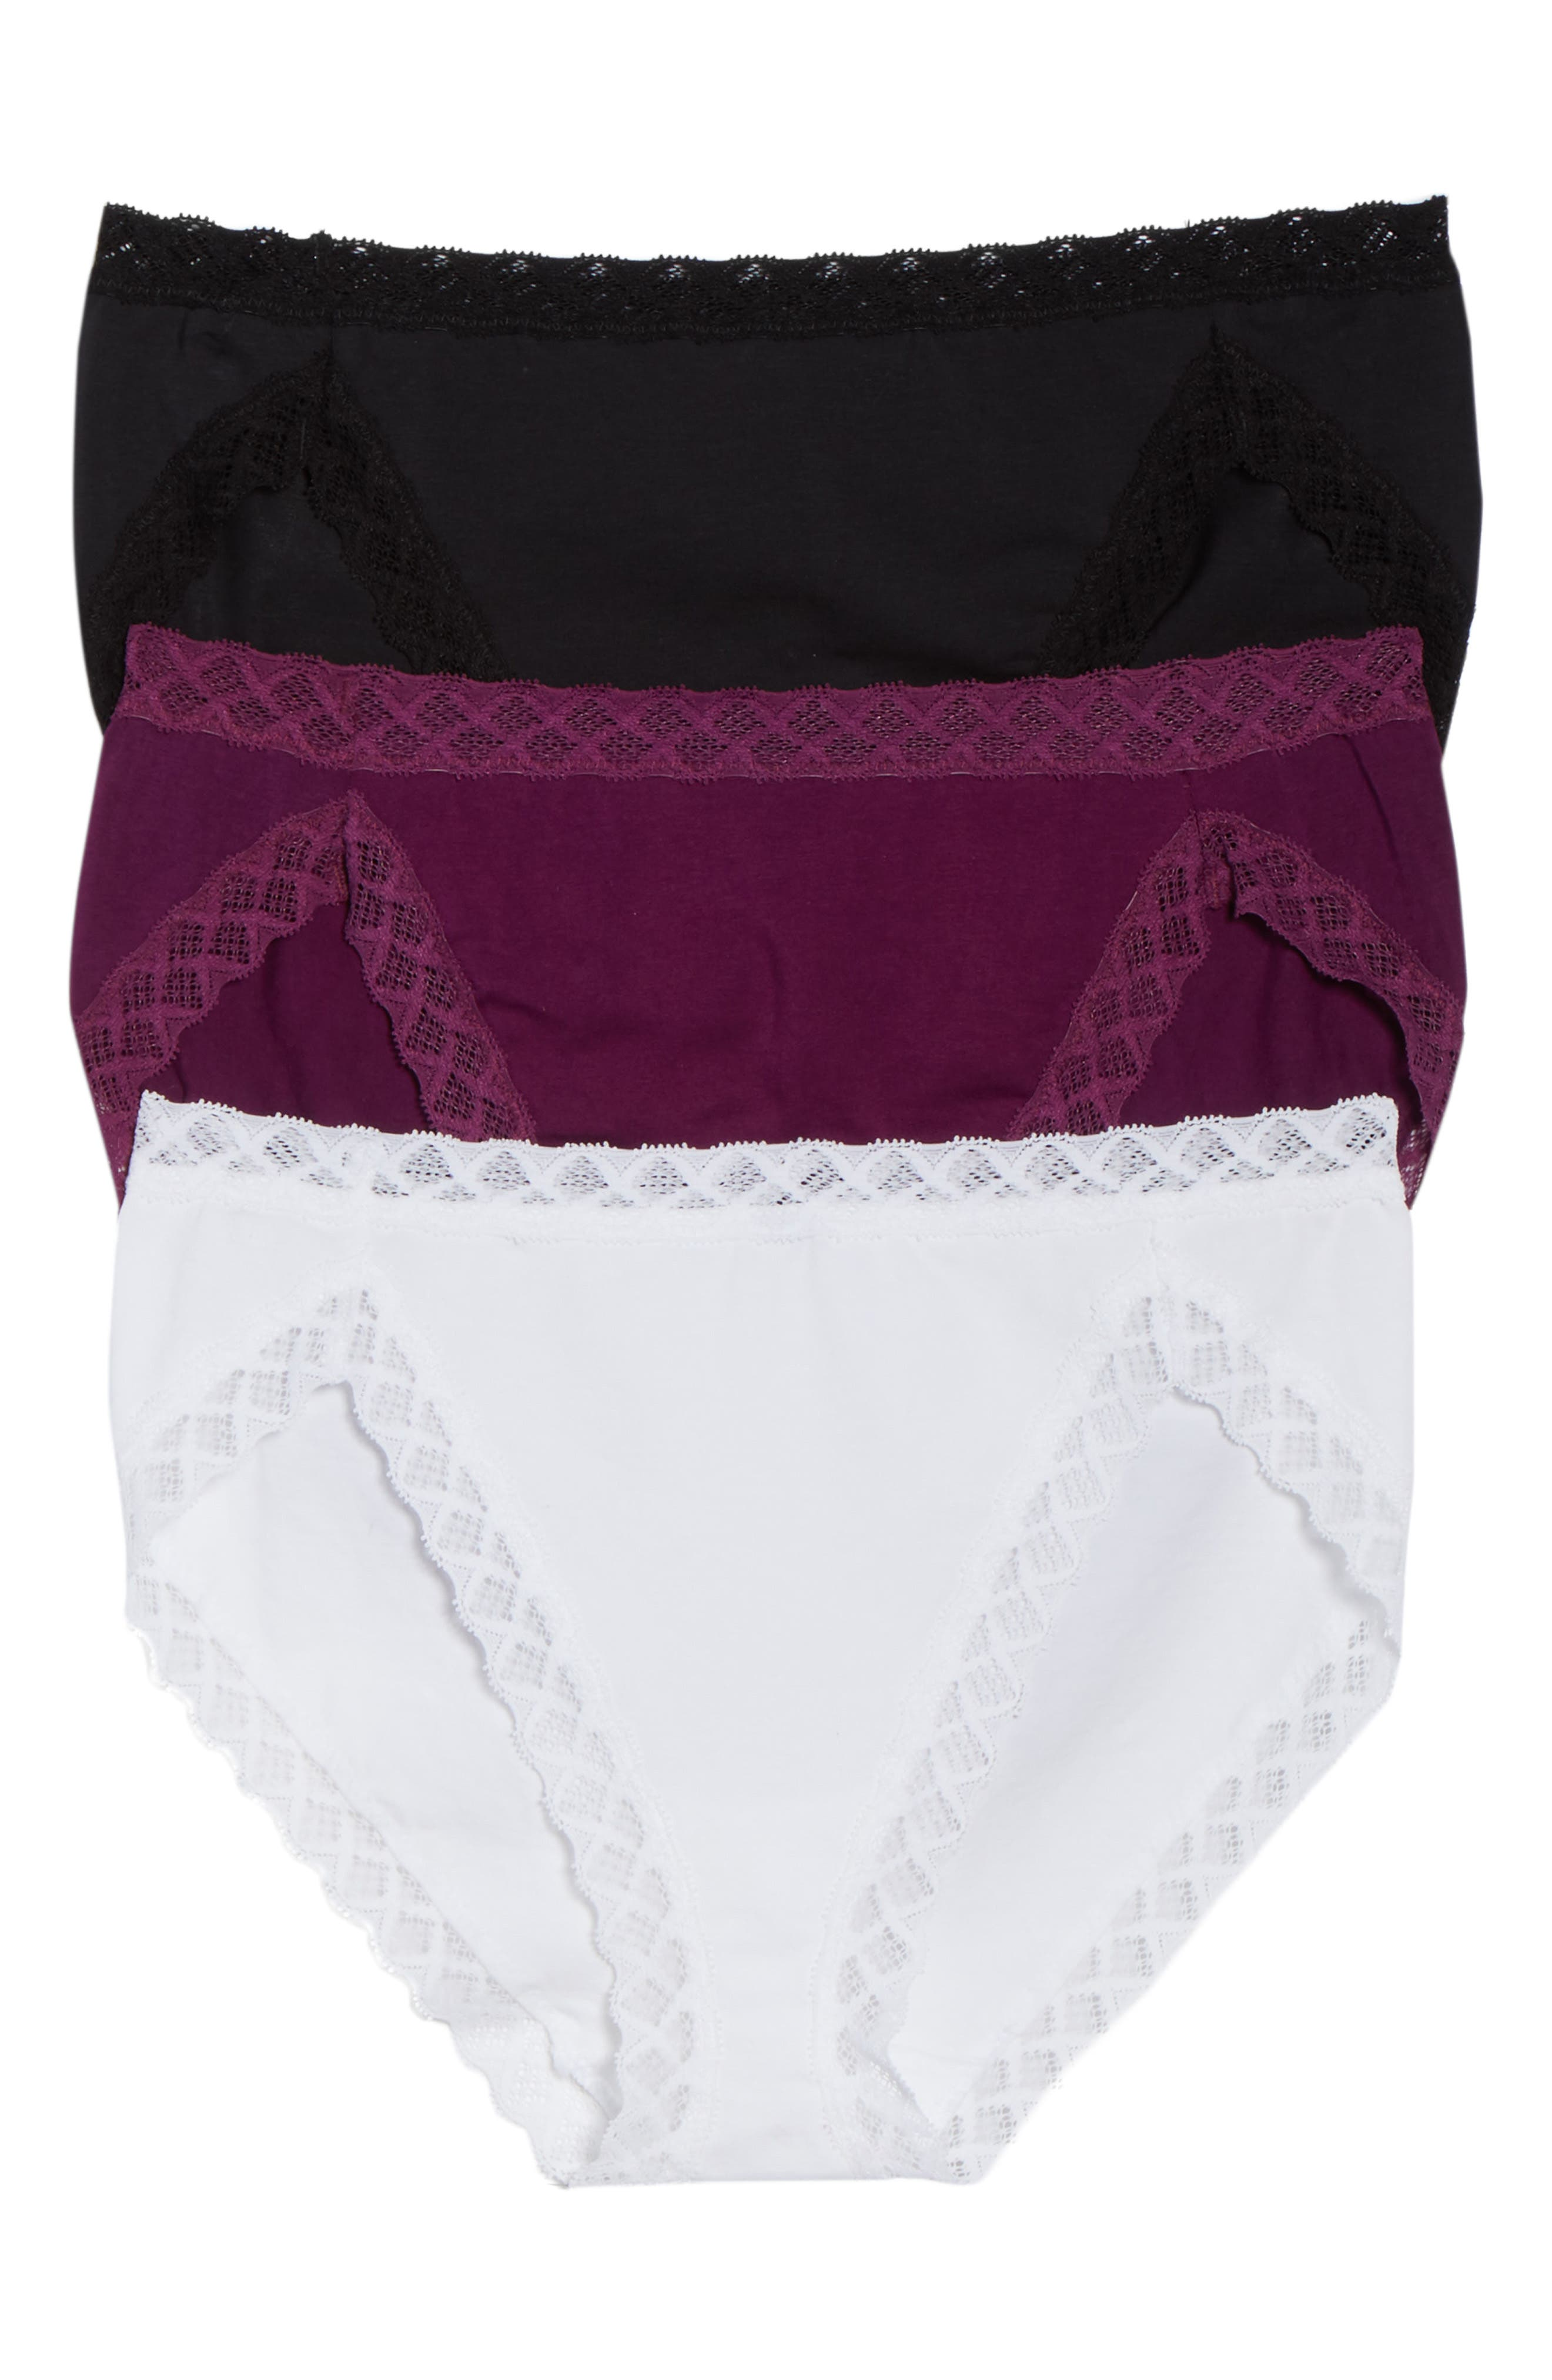 'Bliss' French Cut Briefs,                             Main thumbnail 1, color,                             Imperial Purple/ Black/ White